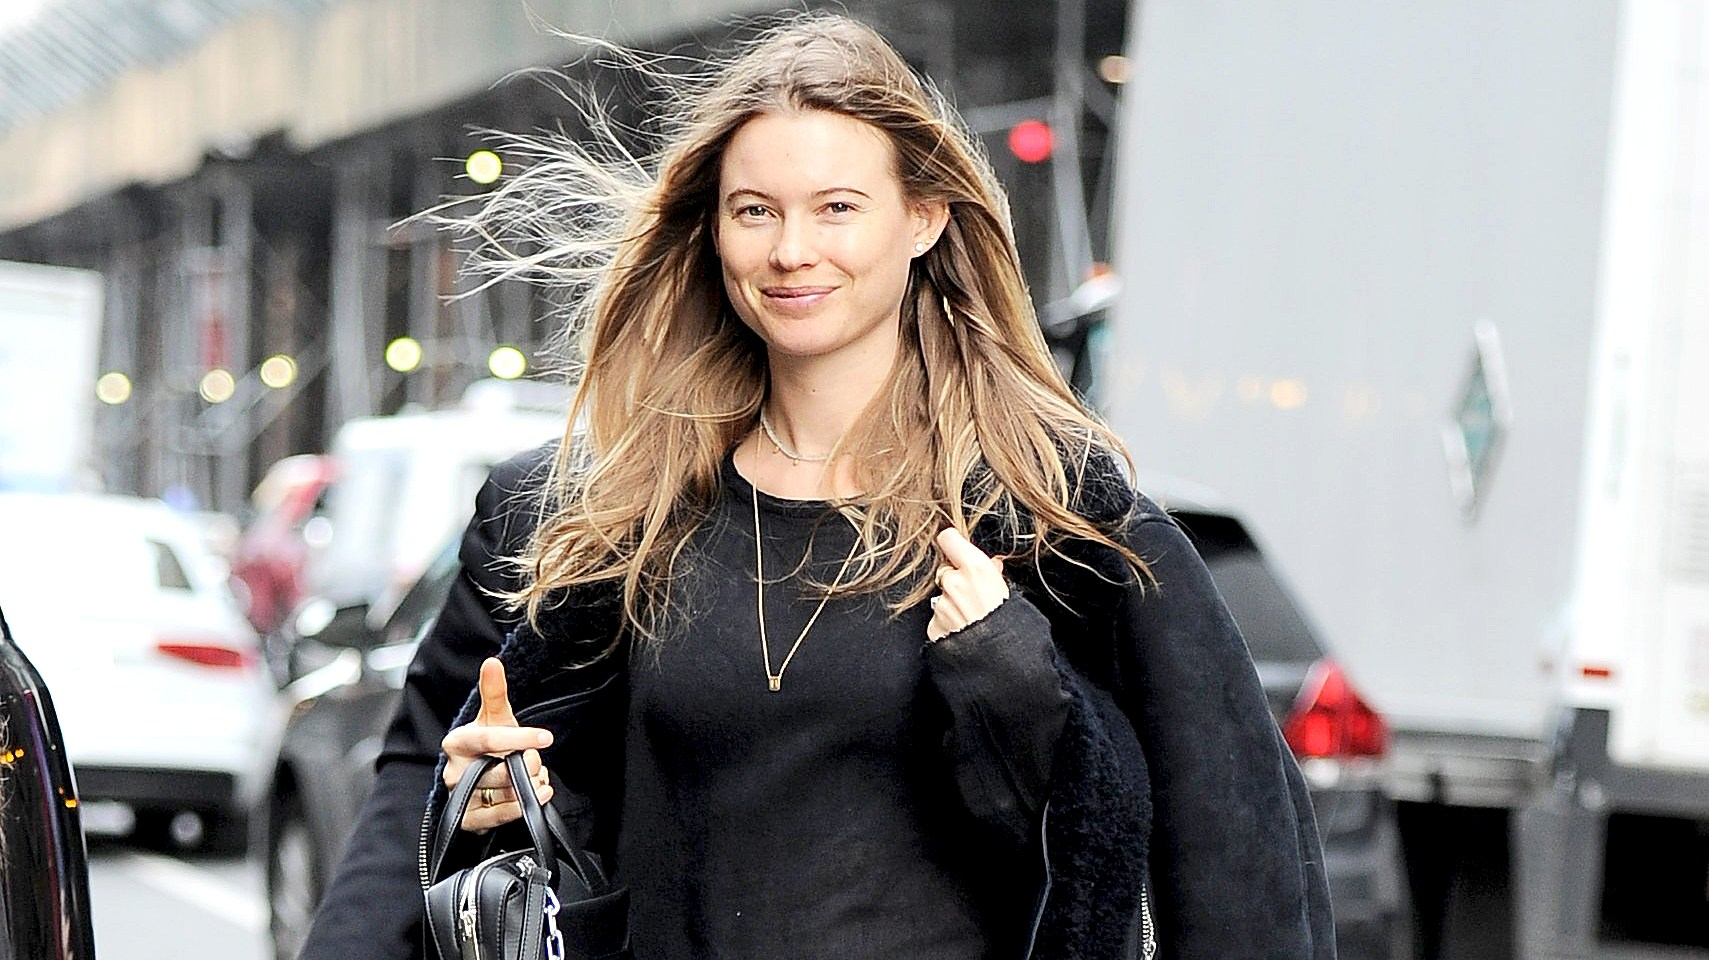 Behati Prinsloo is all smiles as she steps out to head to Dujour magazine event in NYC on March 23, 2016.